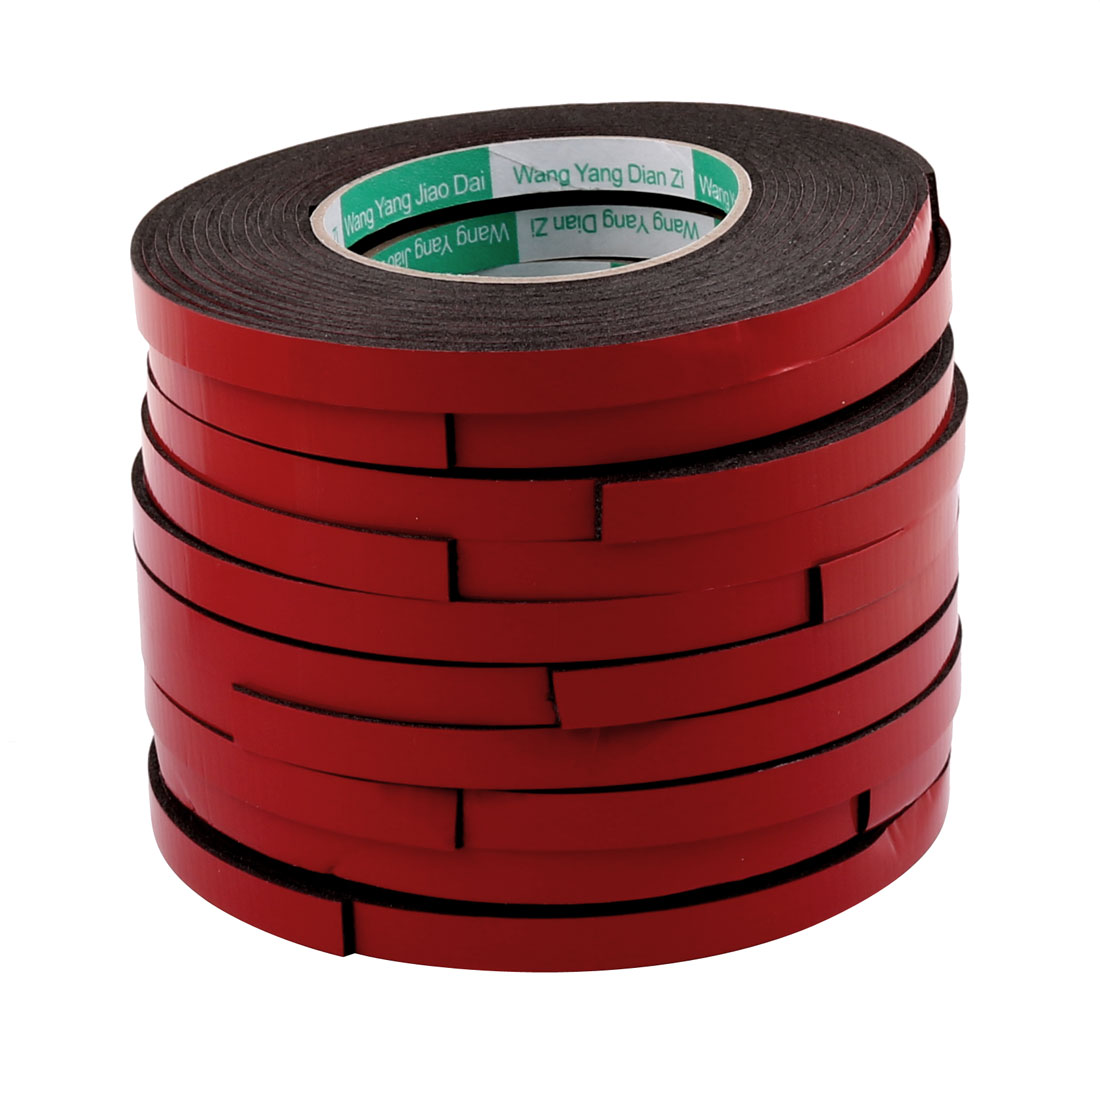 Unique Bargains 10pcs Red Strong Double Sided Adhesive Tape Sponge Tape 10MM Width 5M Length